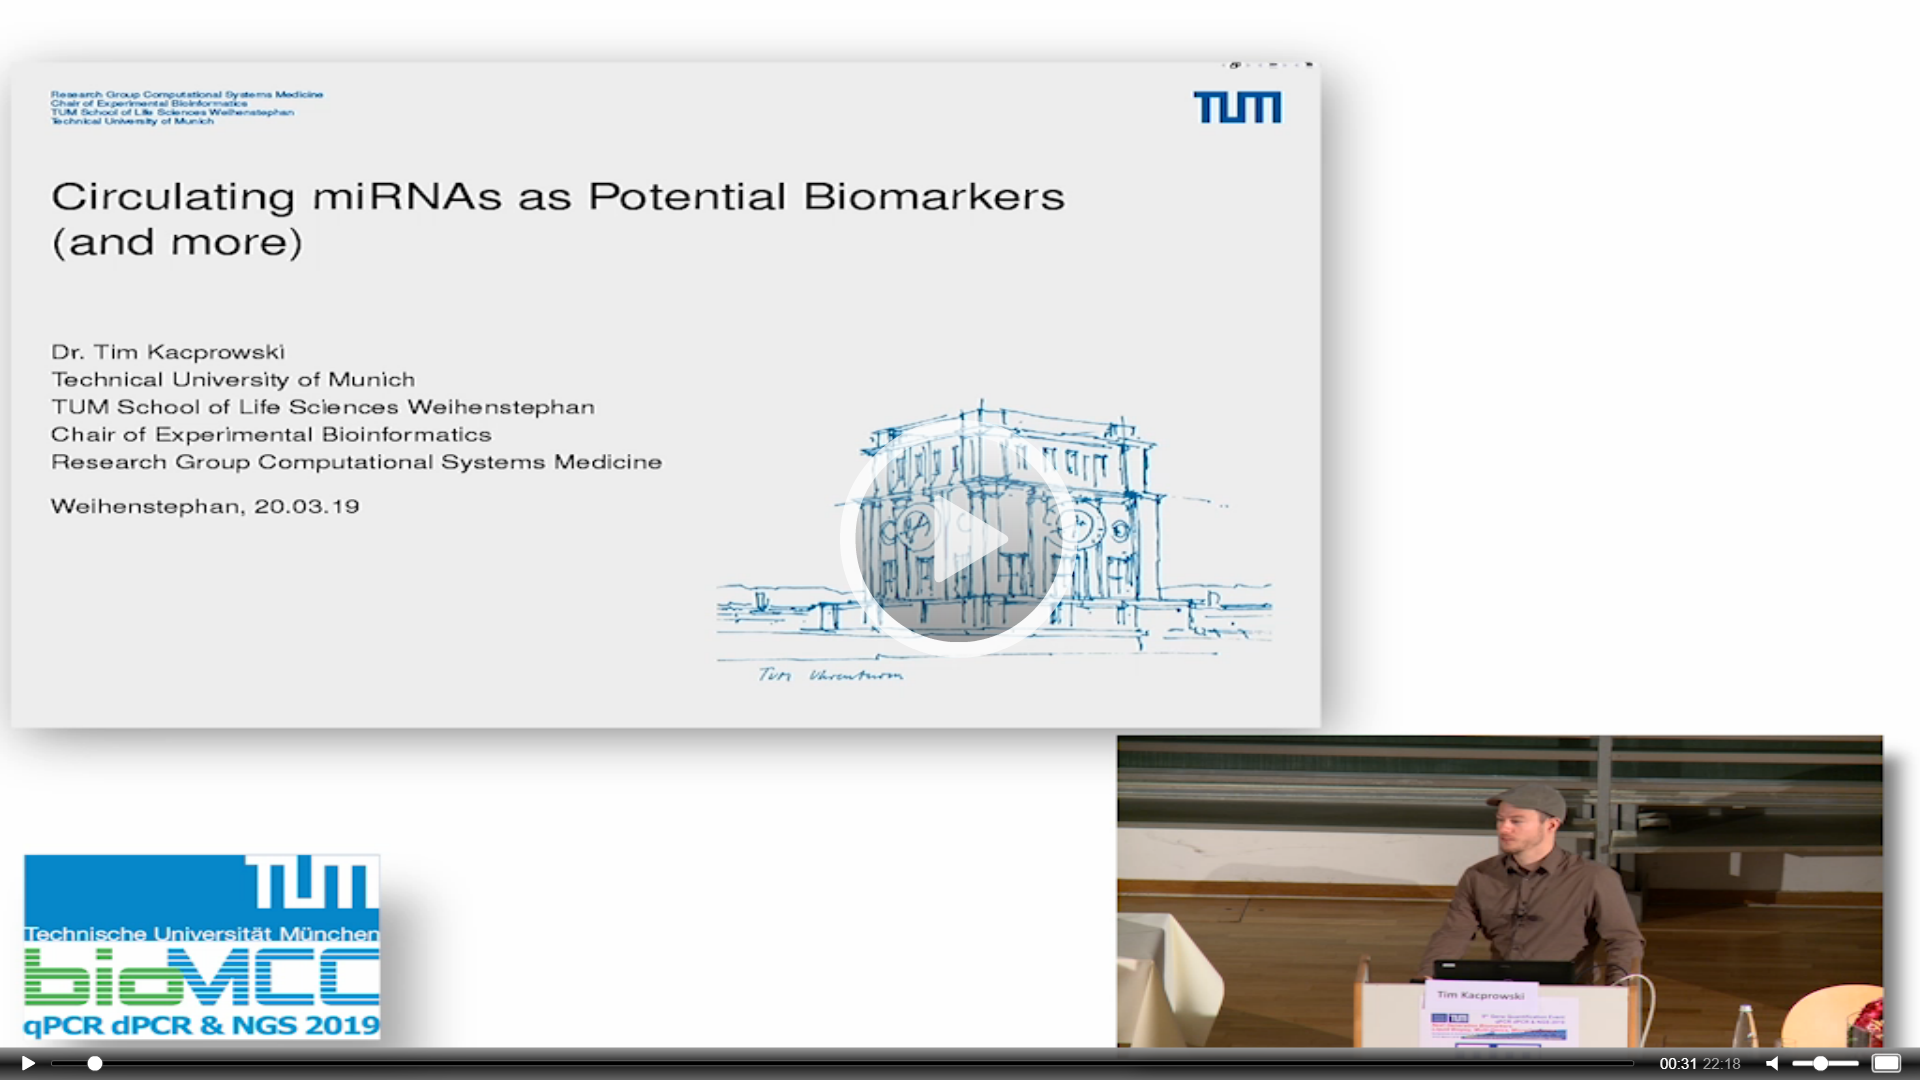 Circulating miRNAs as Potential Biomarkers